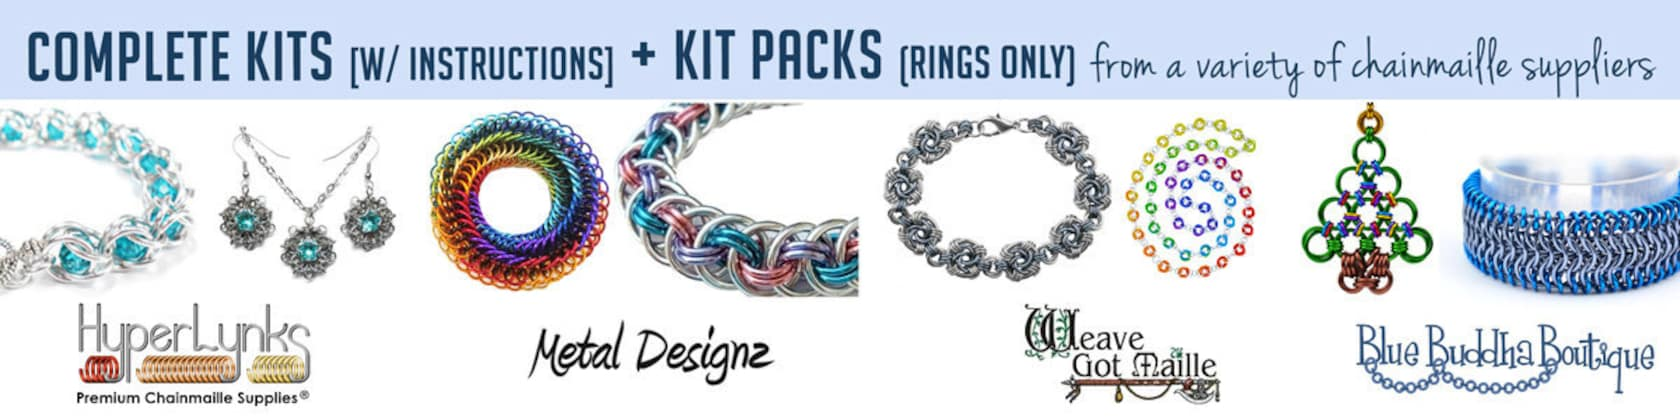 Chainmaille Tutorials Kits Learn To Make By Bluebuddhaboutique